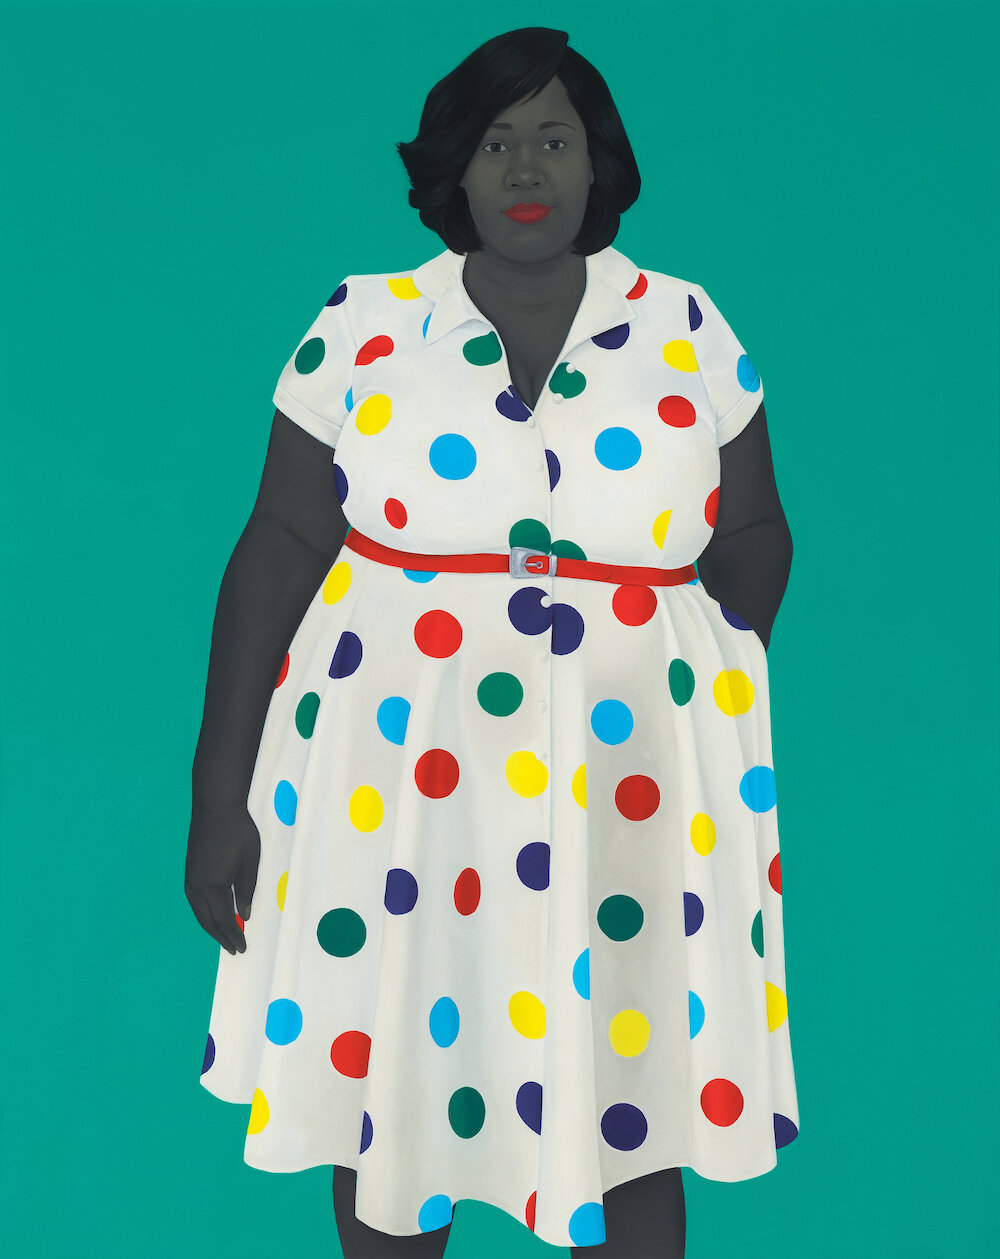 Amy Sherald,  The girl next door , 2019. Oil on canvas, 54 x 43 x 2 ½ in. © Amy Sherald. Courtesy the artist and Hauser & Wirth. Photo: Joseph Hyde.